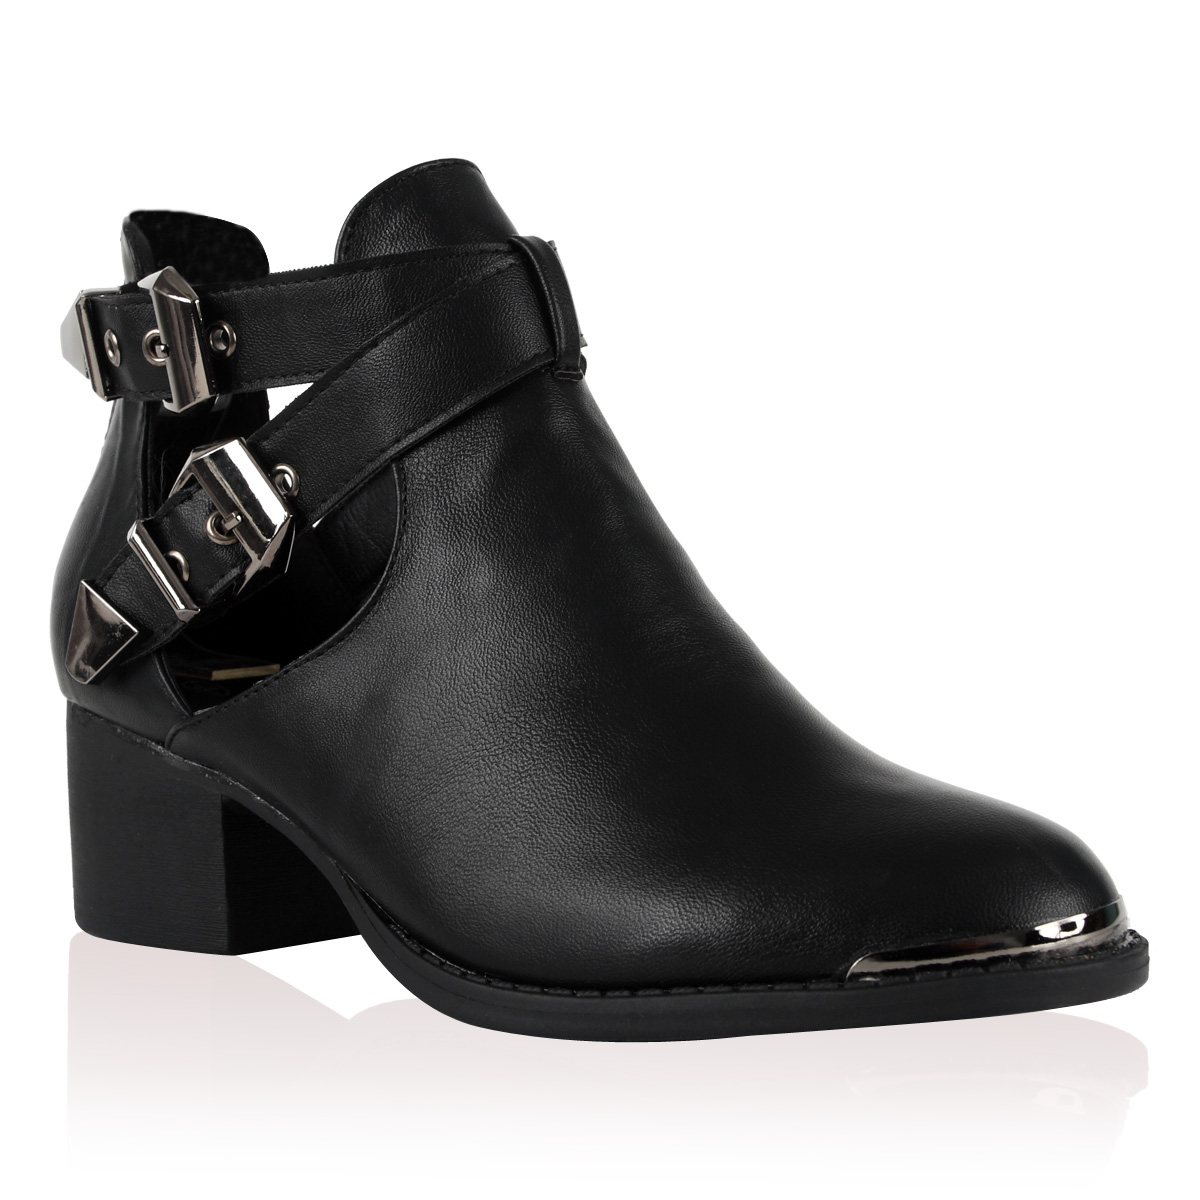 98V WOMENS JET BLACK CUT OUT BUCKLE STRAP LADIES HEEL ANKLE BOOT ...